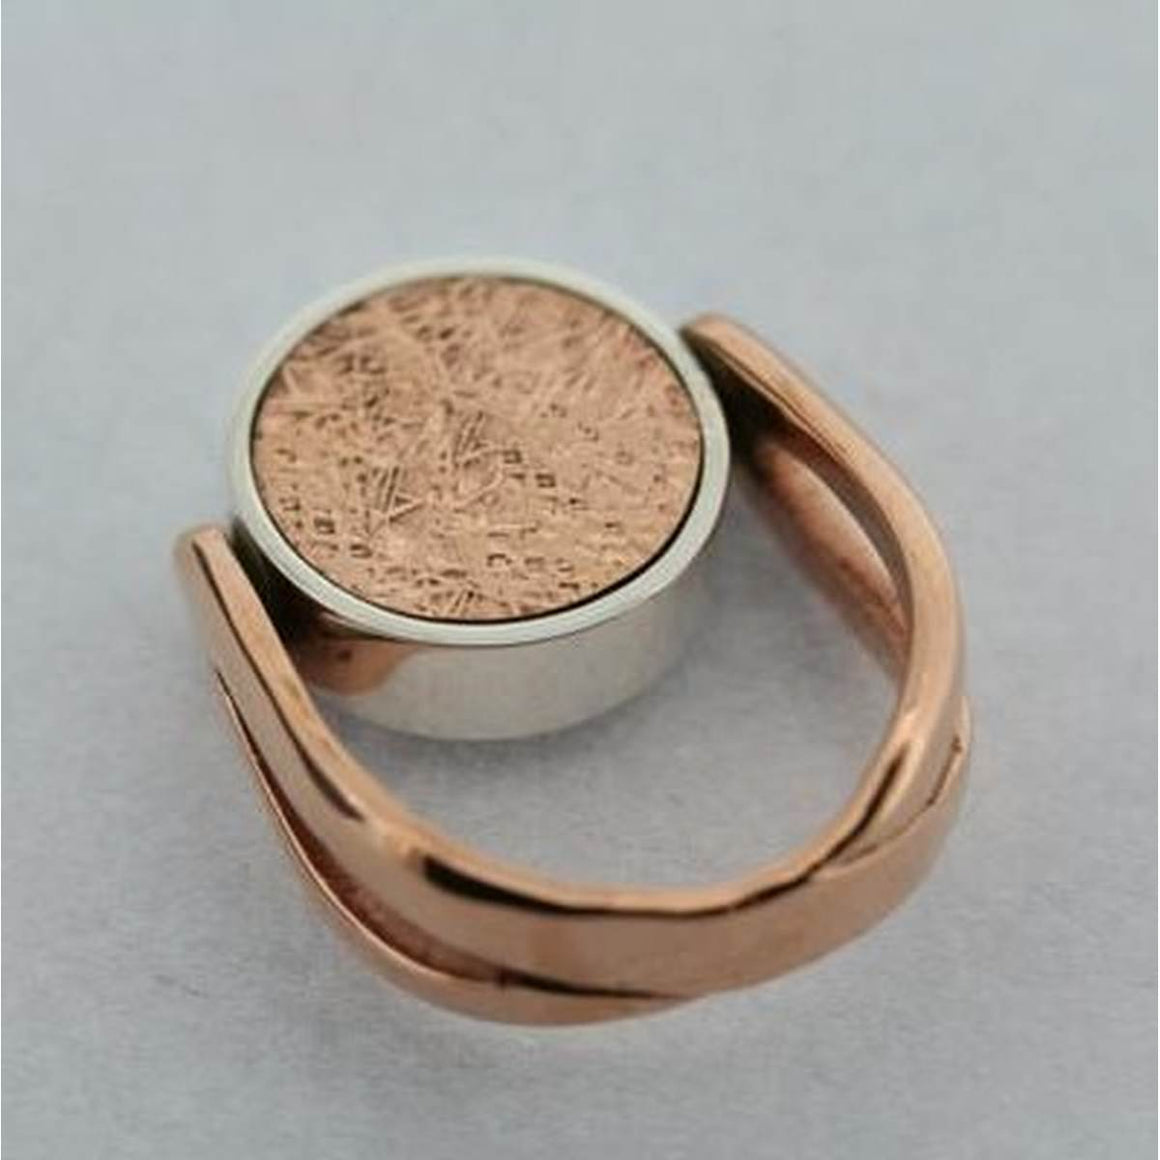 An unusual and sculptural Copper coloured ring. Featuring a spinnable disc which has a textured copper on one side and a Black Obsidian stone on the other.